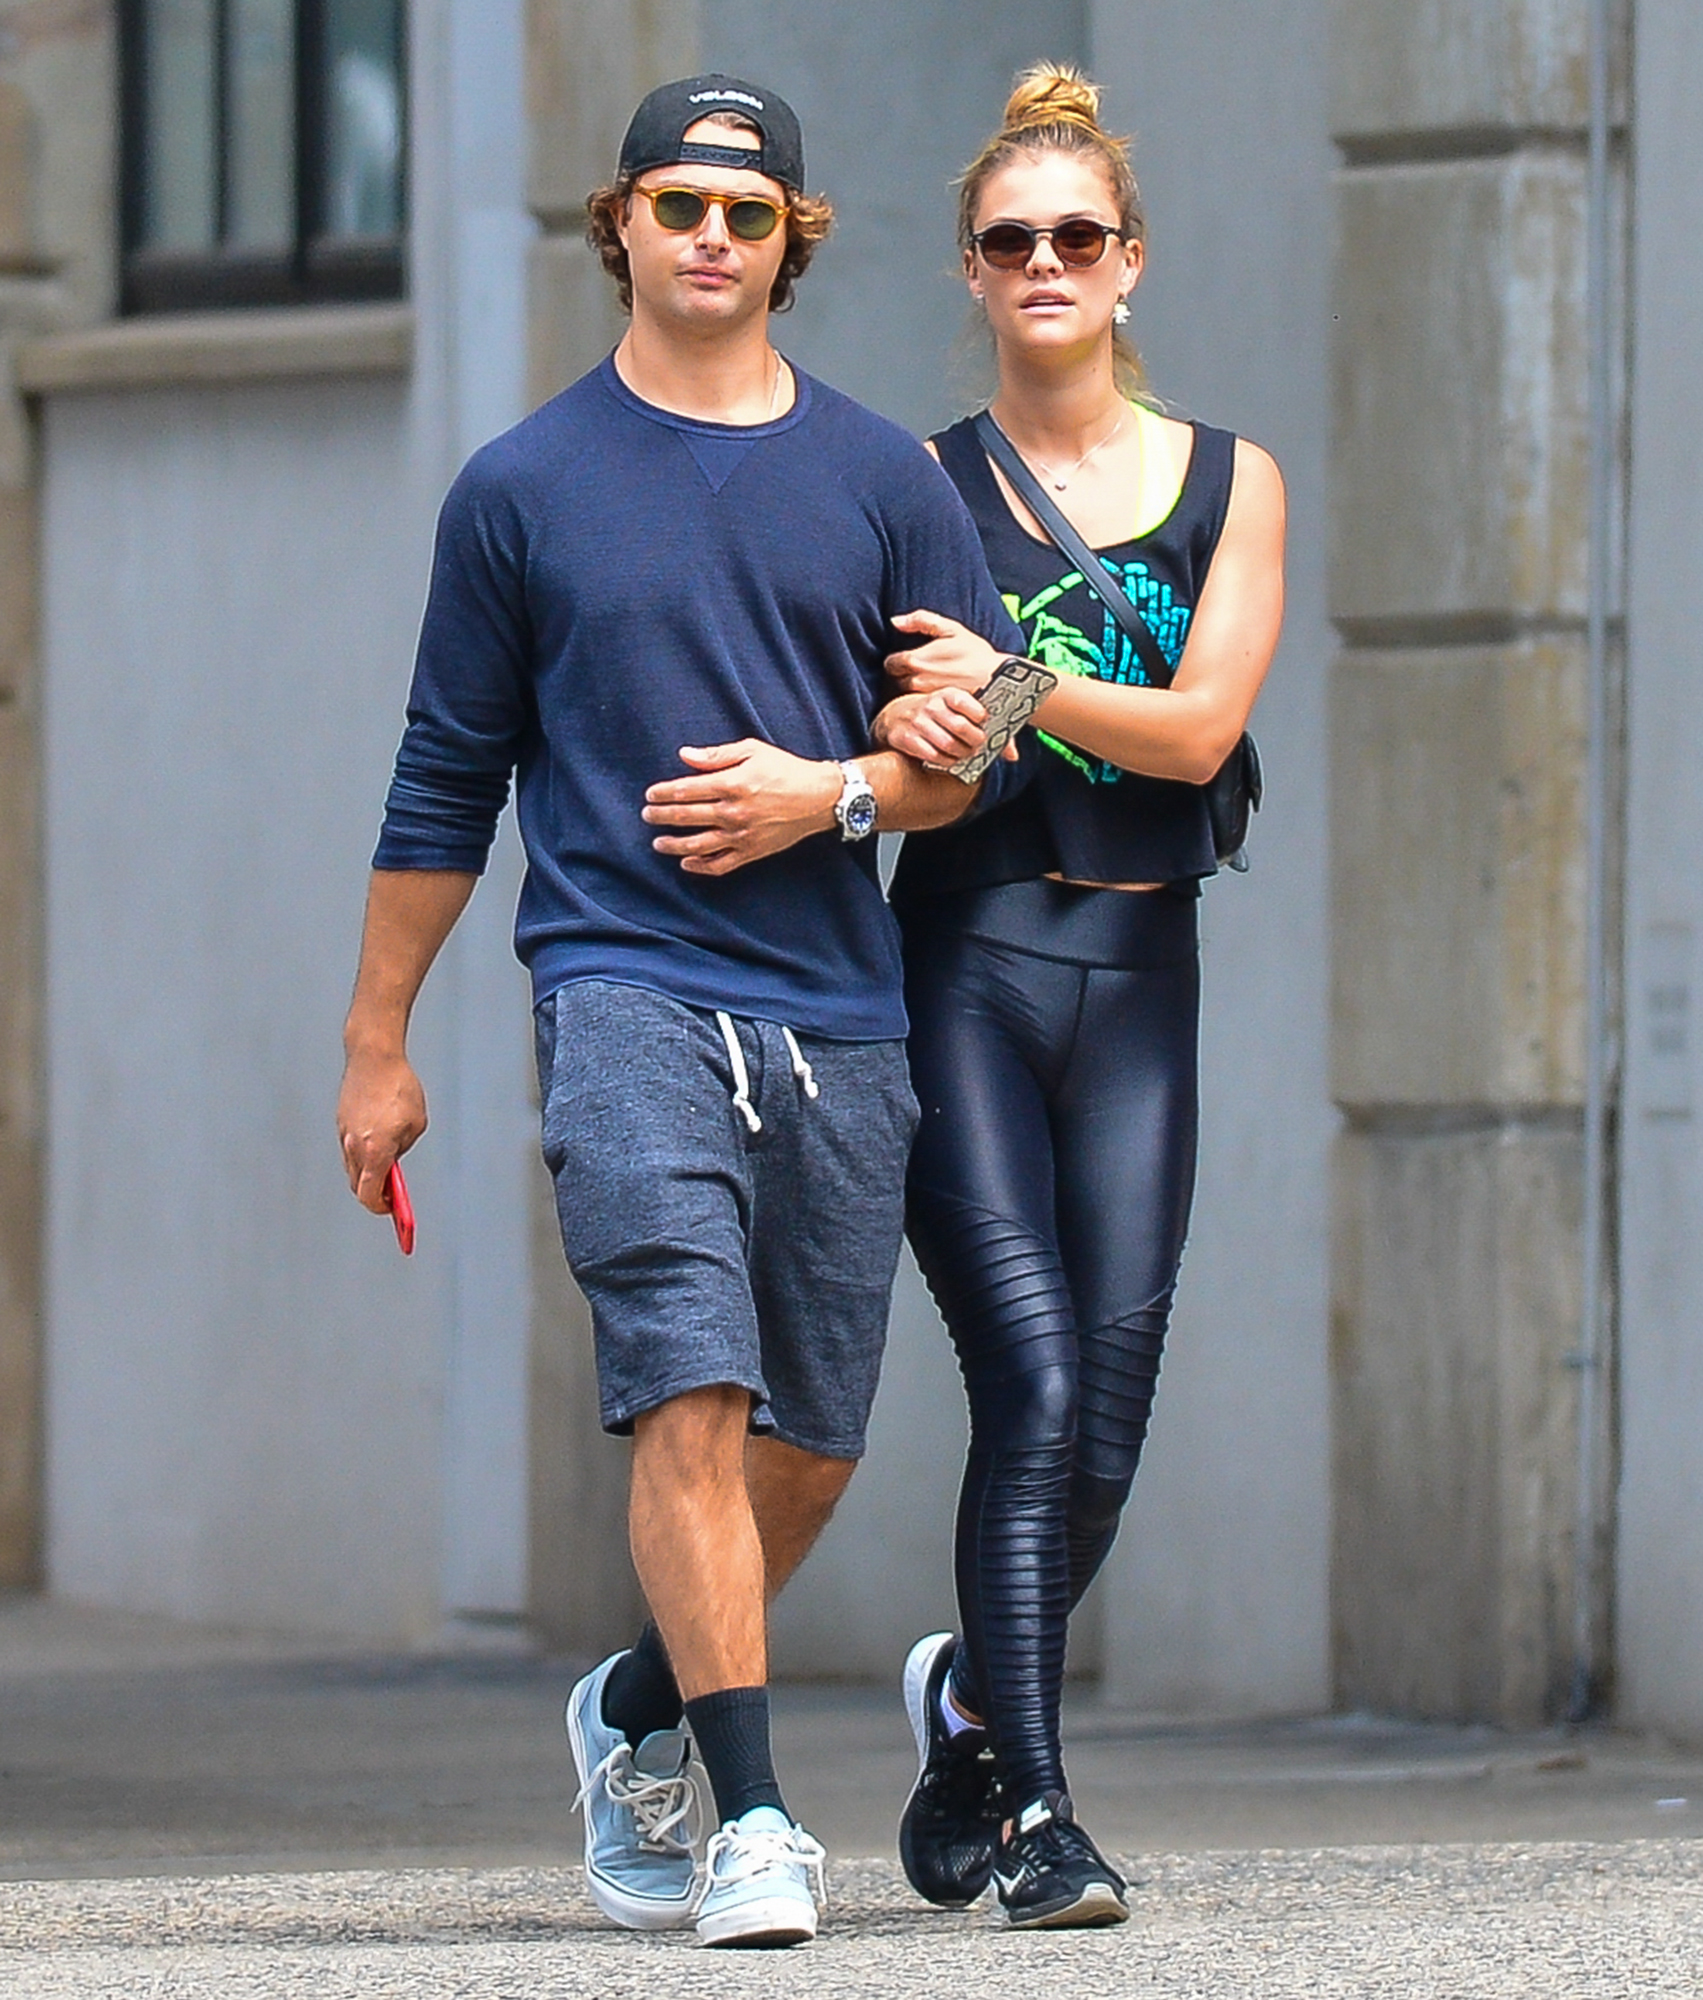 EXCLUSIVE: Nina Agdal Walks Arm in Arm with Boyfriend Jack Brinkley-Cook in New York City